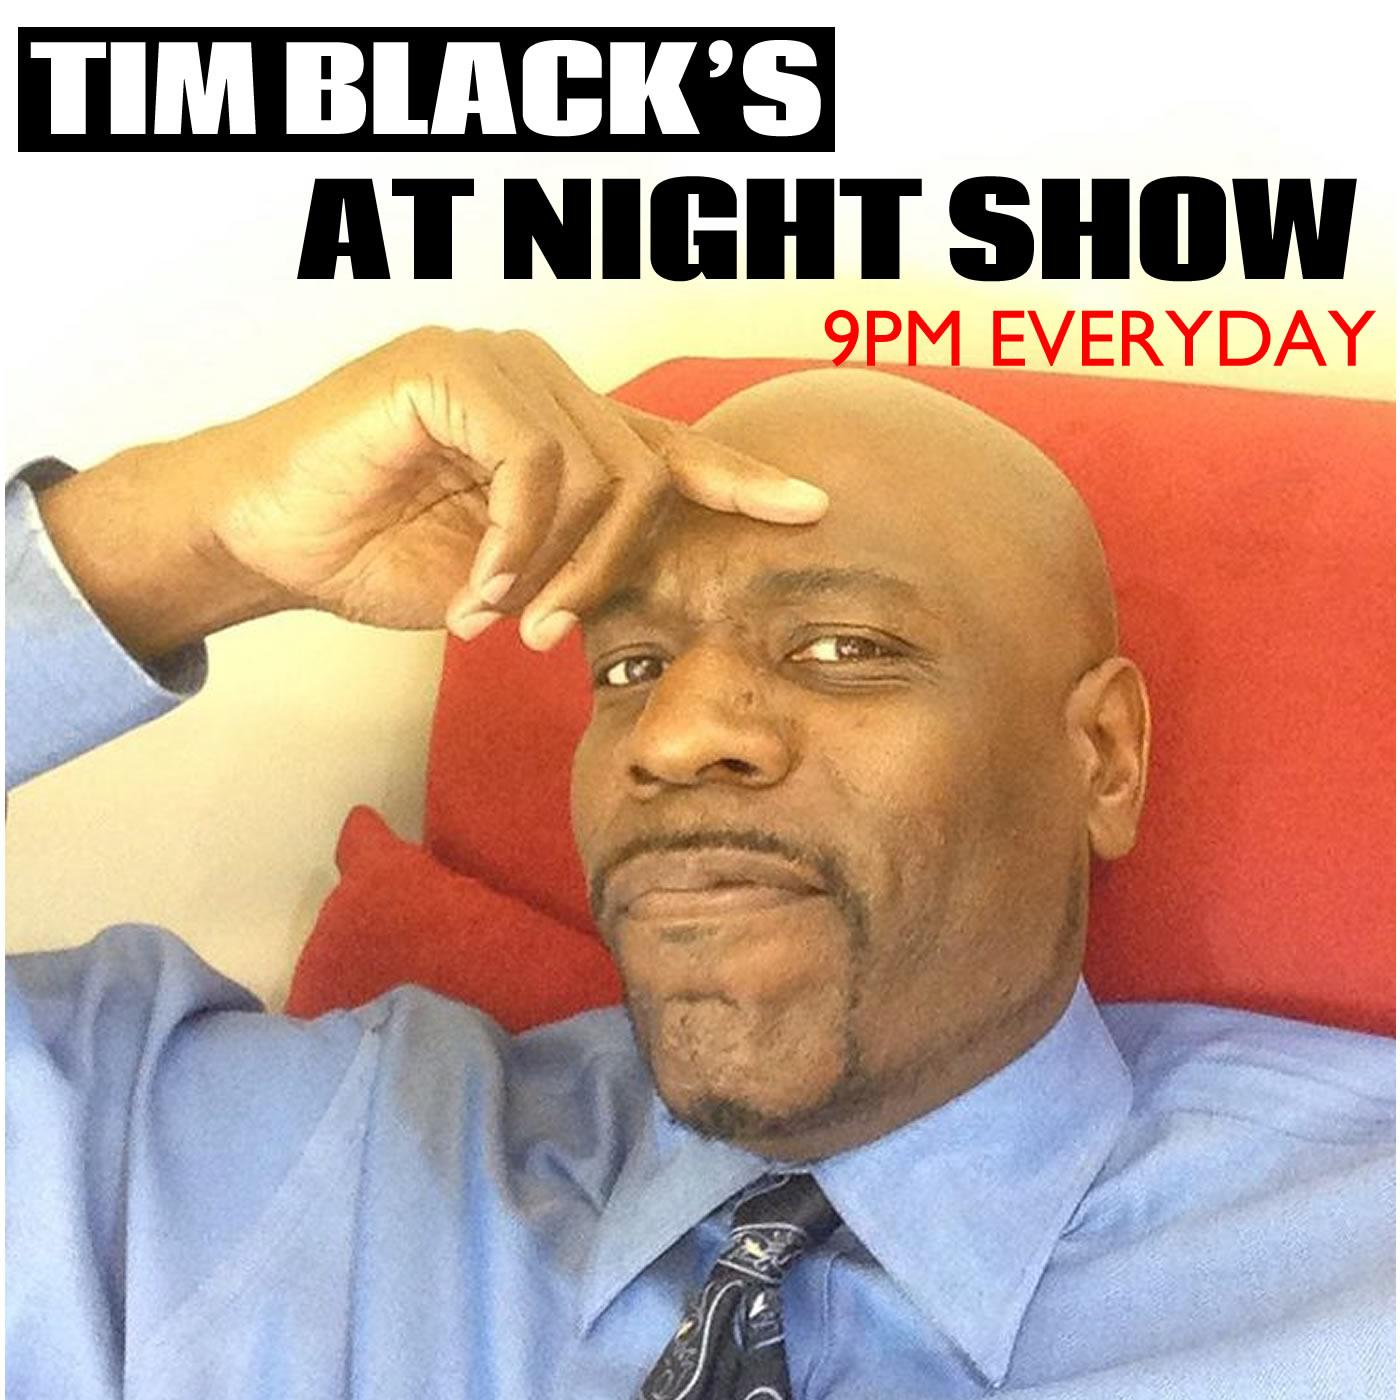 The Tim Black At Night Show